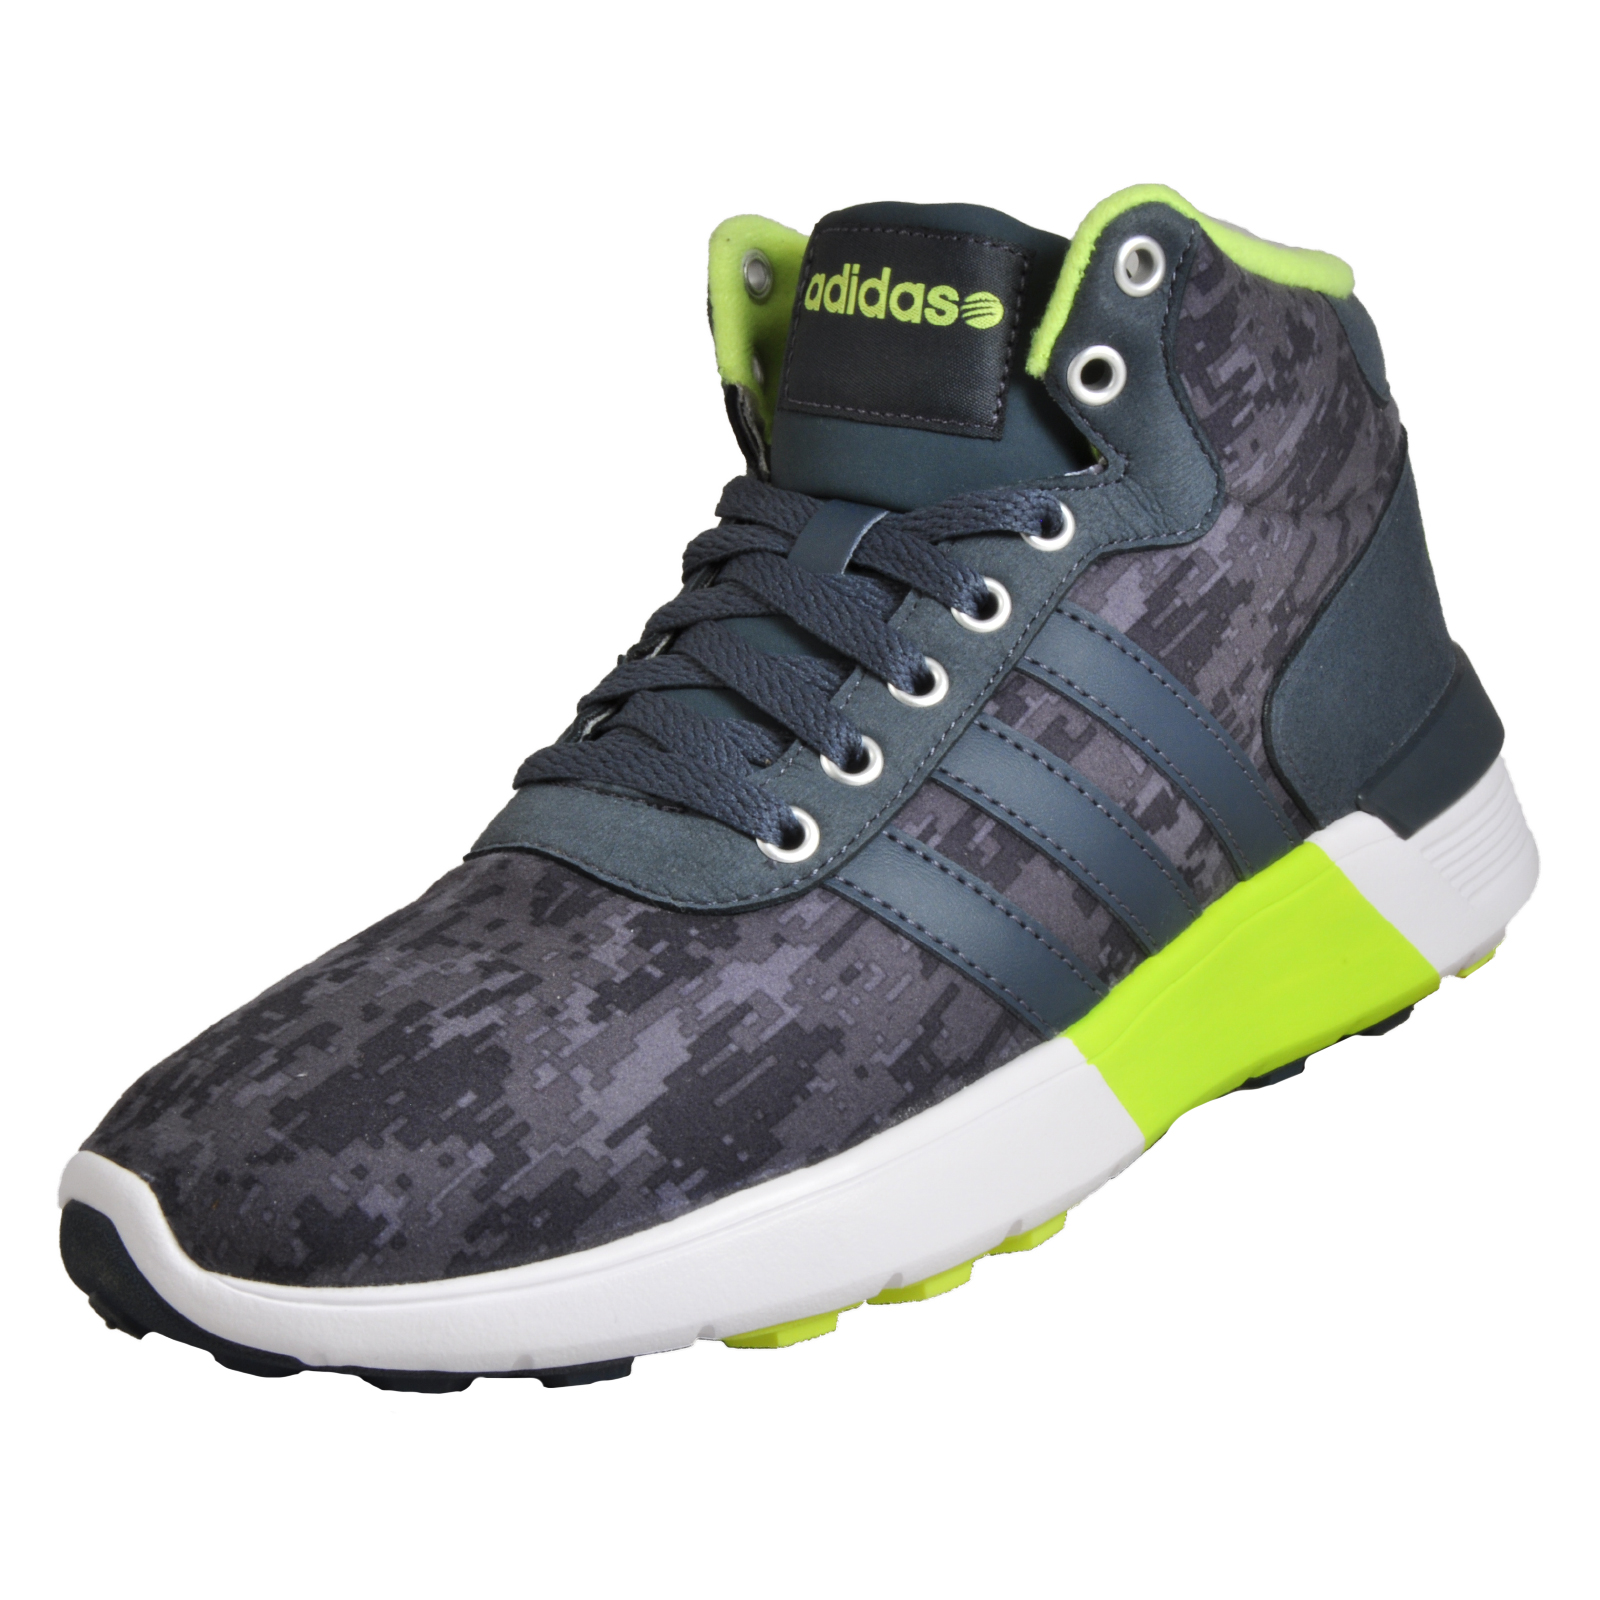 the latest 48afd 0500c Details about Adidas Lite Racer Mid Mens Athletic Fashion Gym Trainers  Sneakers Grey